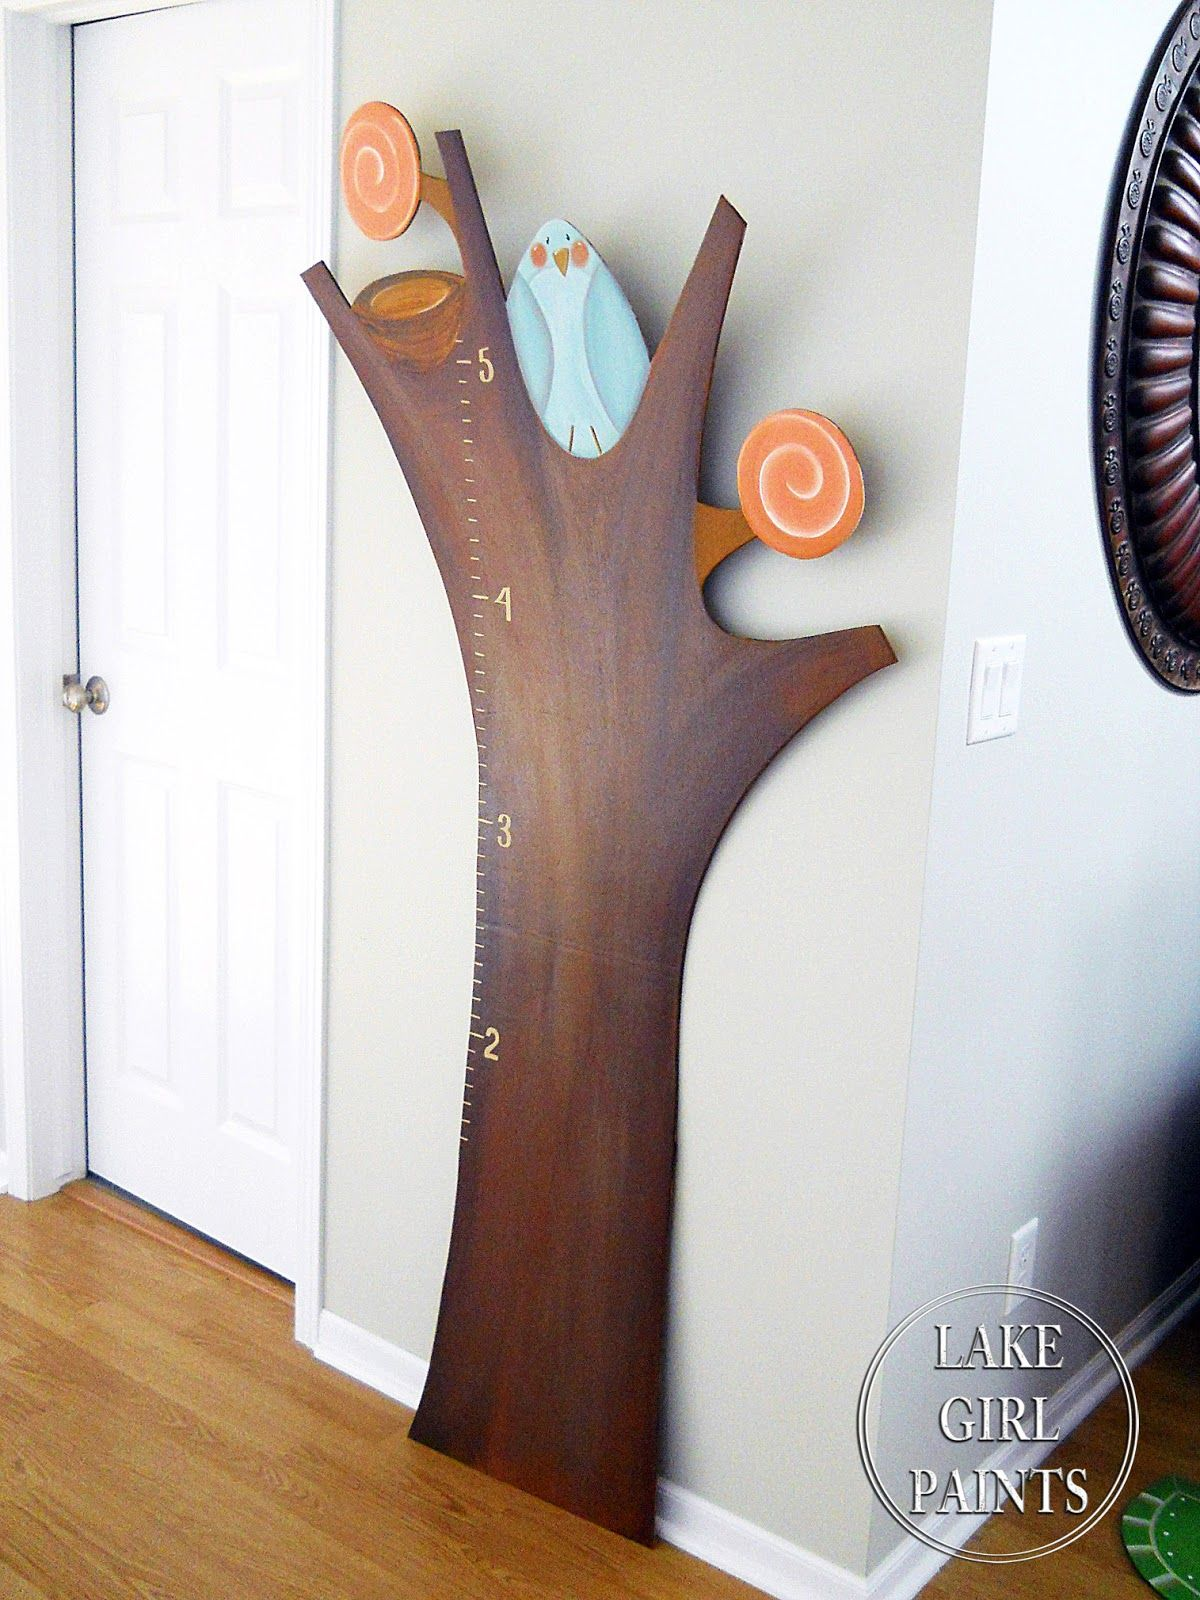 Lake girl paints making tree growth charts for kids playroom lake girl paints making tree growth charts for kids playroom nvjuhfo Gallery